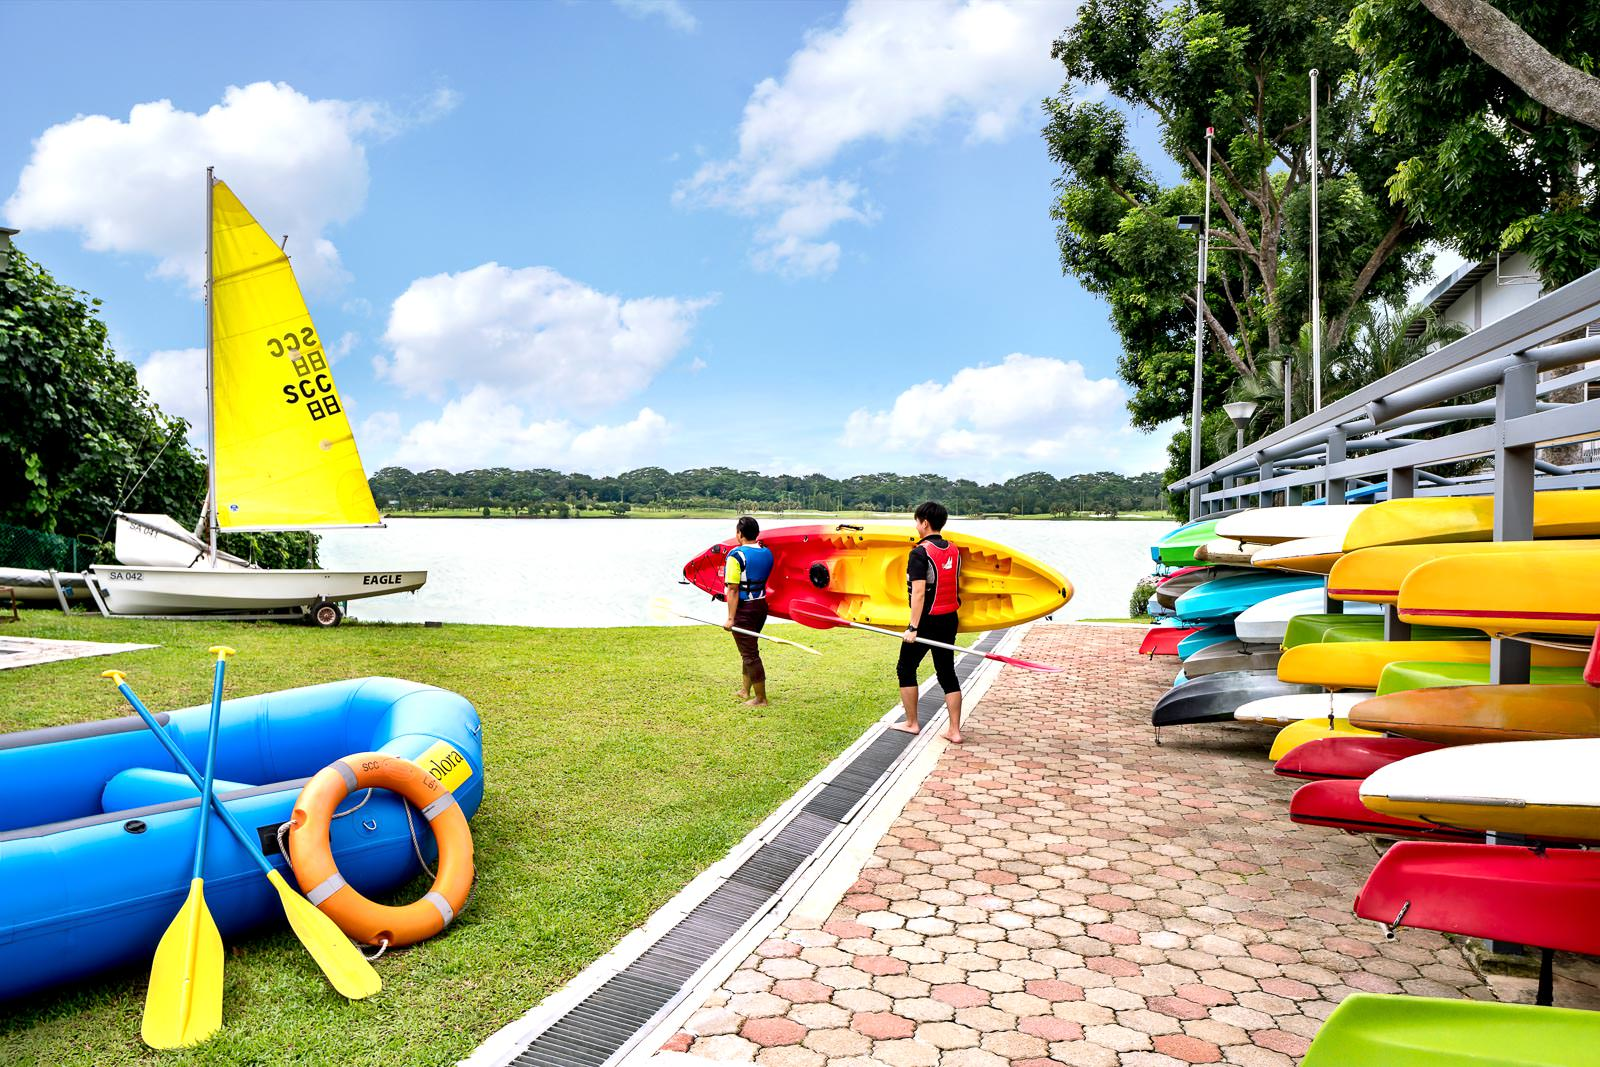 Interior photography of the seletar country club in singapore showing two men carrying a boat to the water with various water sports activities